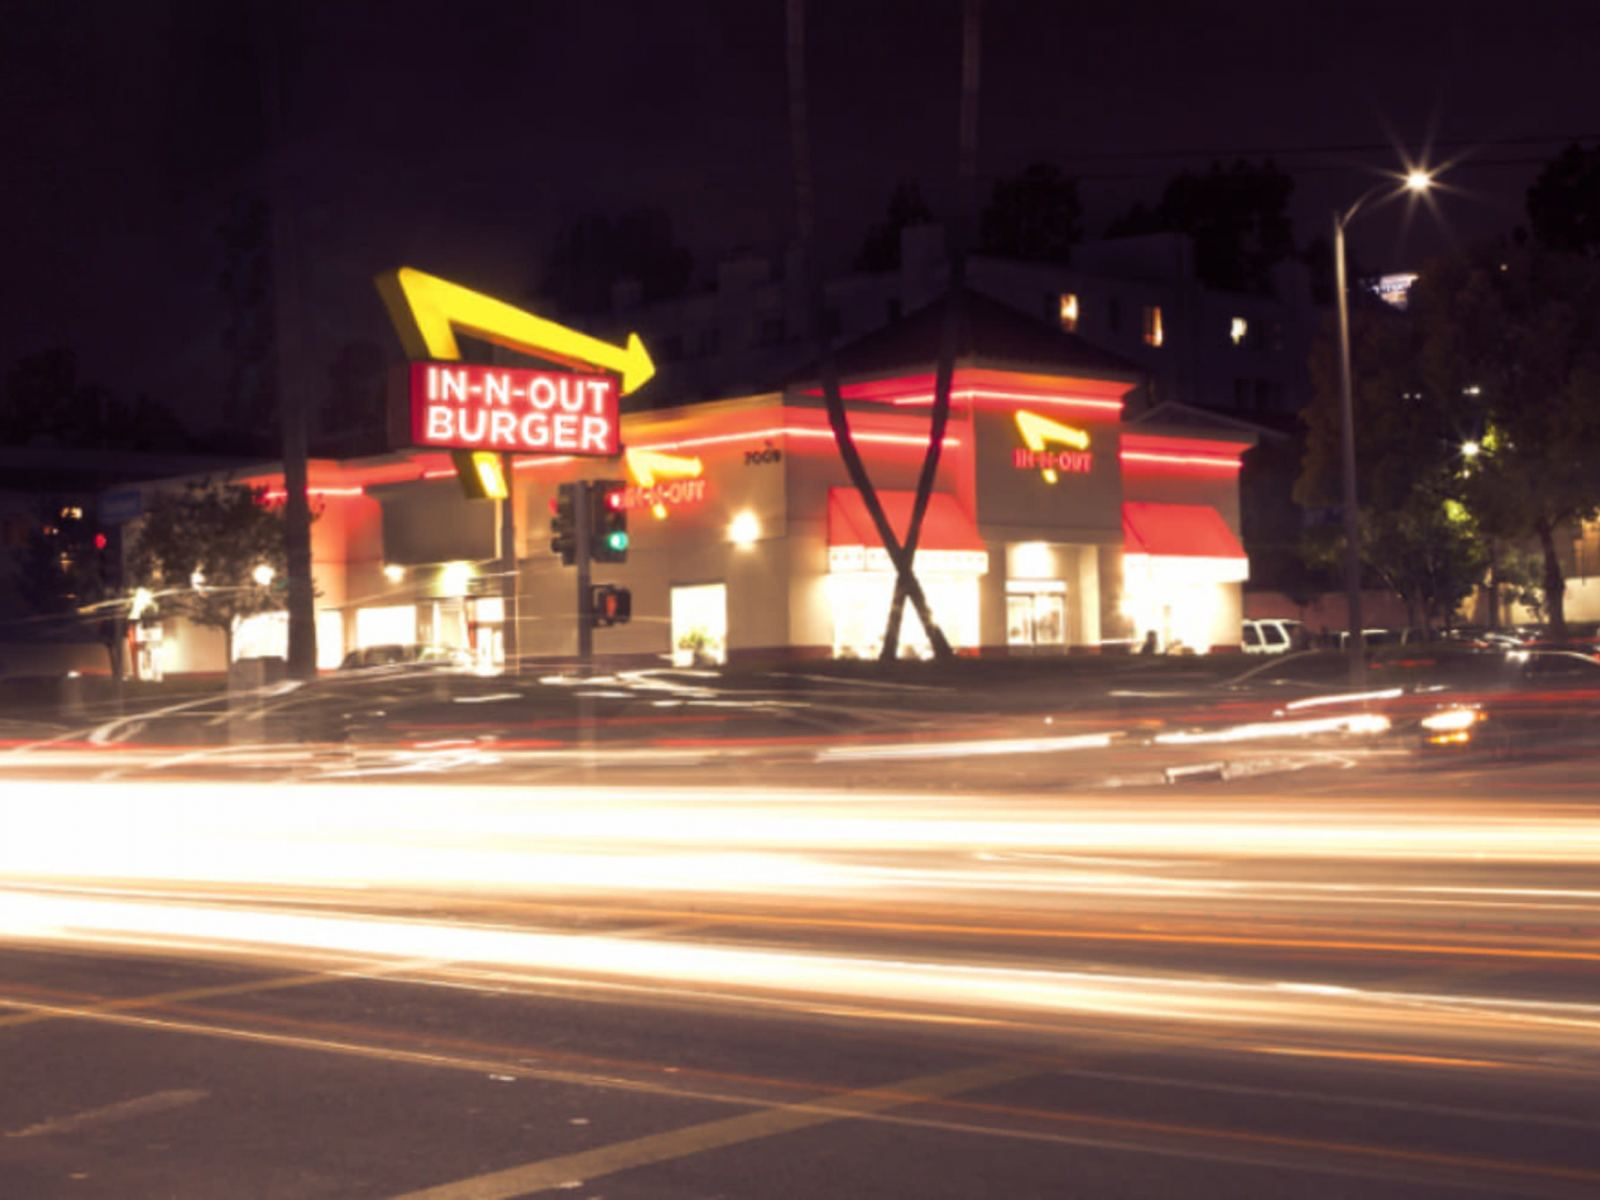 In-N-Out Burger - Hollywood